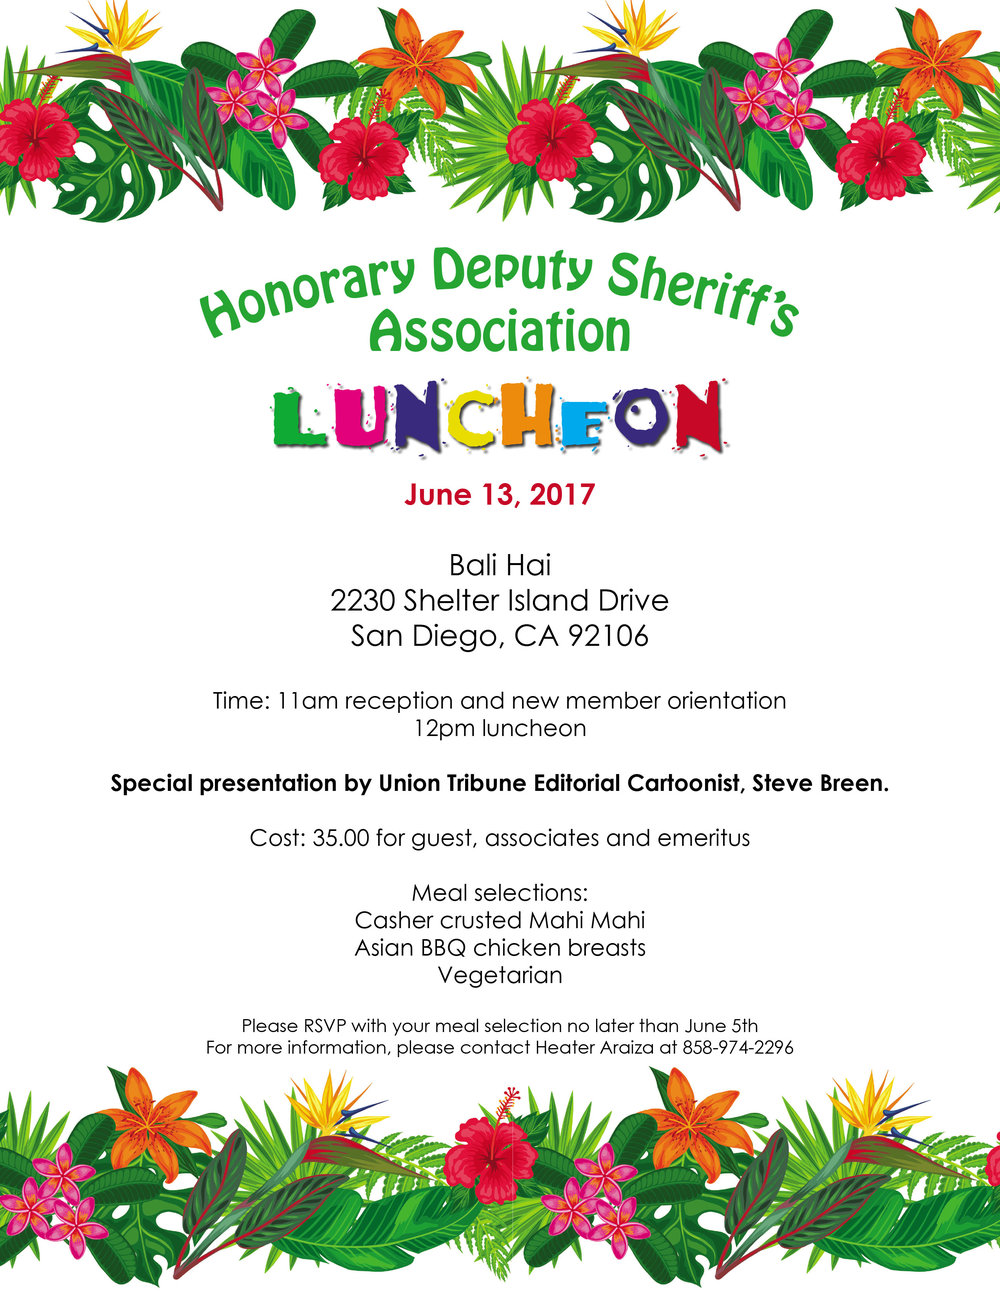 Date:  June 13, 2017 Time:  11:00am Reception  12:00pm Luncheon Cost: $35 for Guests, Associates and Emeritus RSVP Deadline: June 5, 2017 Register online today below or contact Heather Araiza at 858-882-7645 to register via phone. Please RSVP to this catered event so that everyone can be accommodated. SUBMIT REGISTRATION BELOW  To submit payments by mail please include your name, names of your guests and payment made payable to:  Honorary Deputy Sheriffs' Association PO Box 421260 San Diego, CA 92142-1260